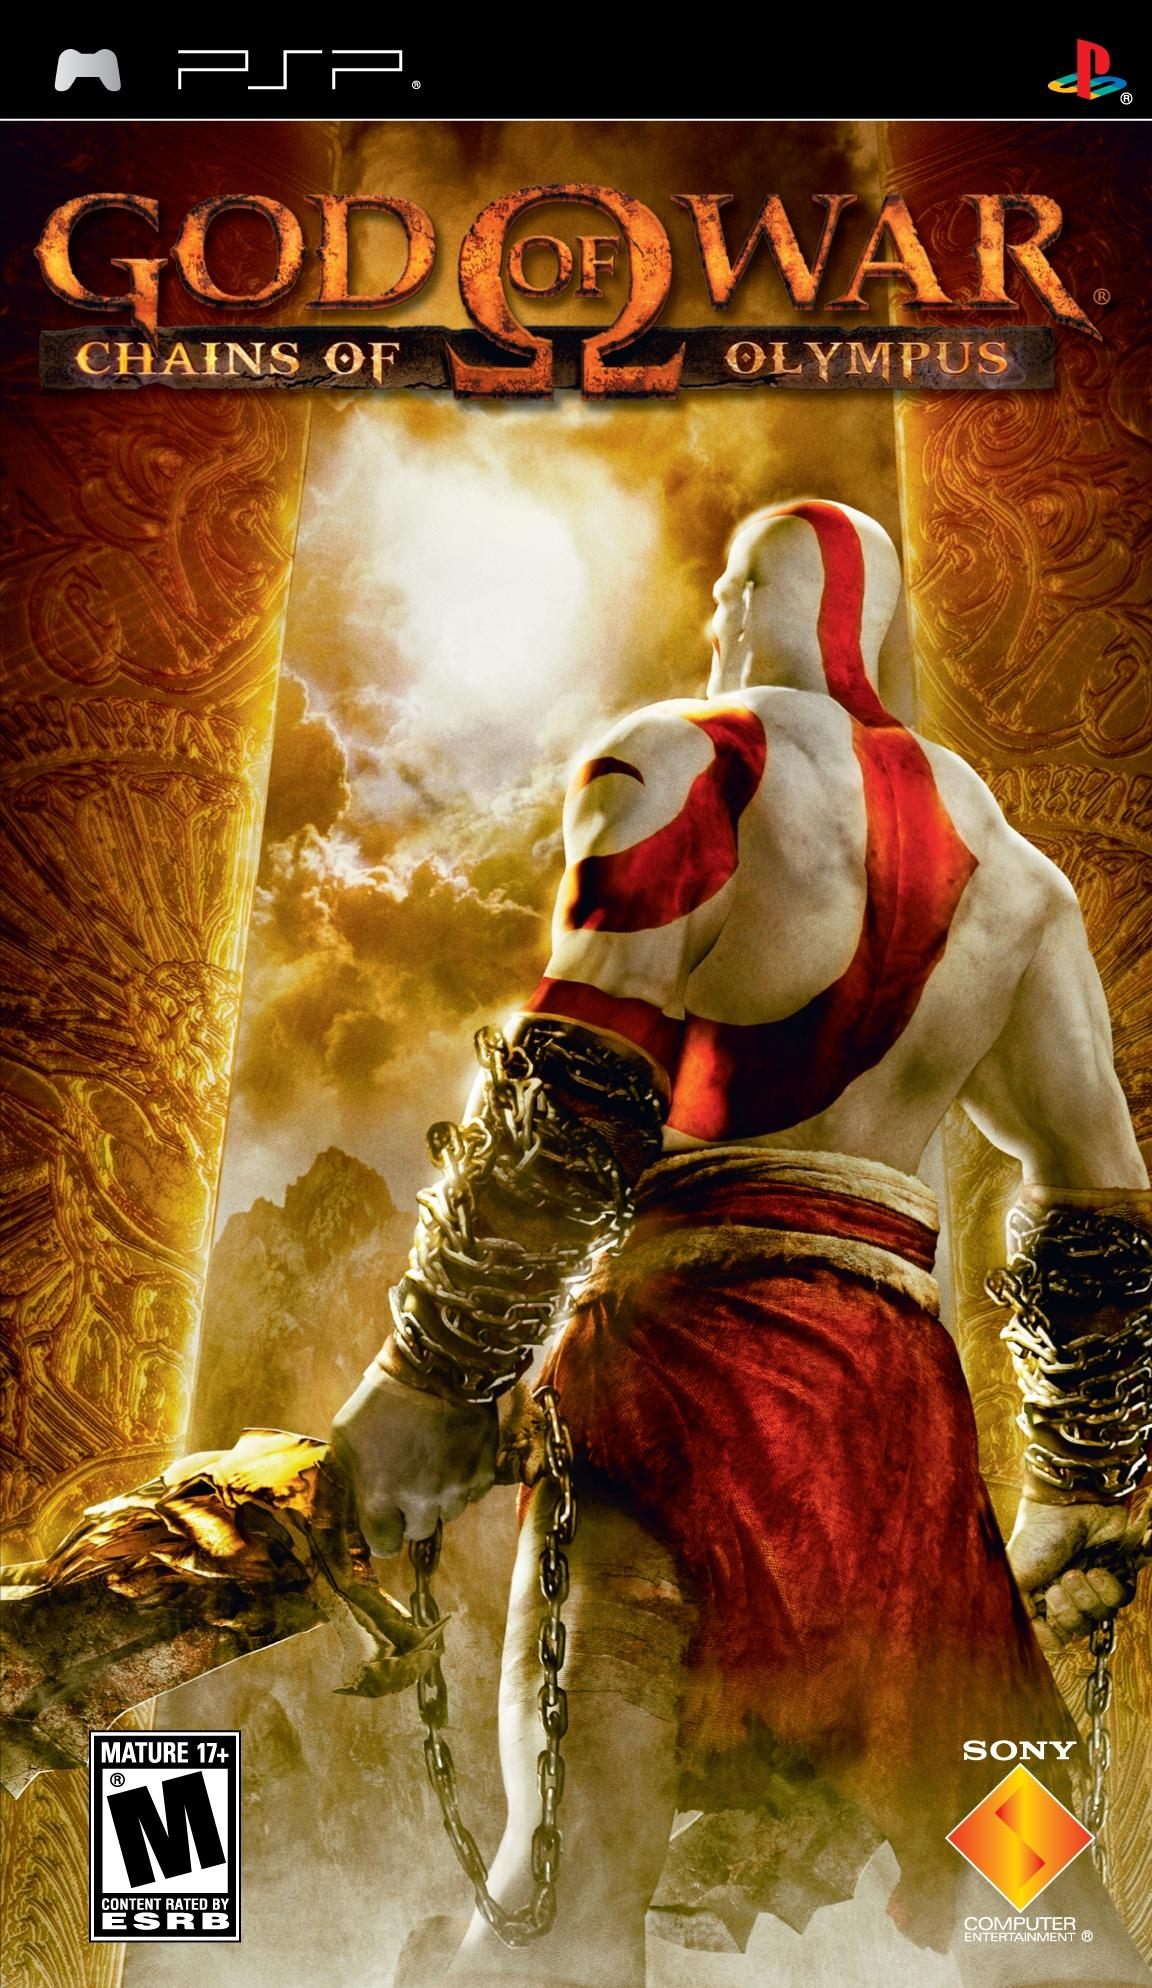 God of War: Chains of Olympus | PPSSPP Emulator Wiki